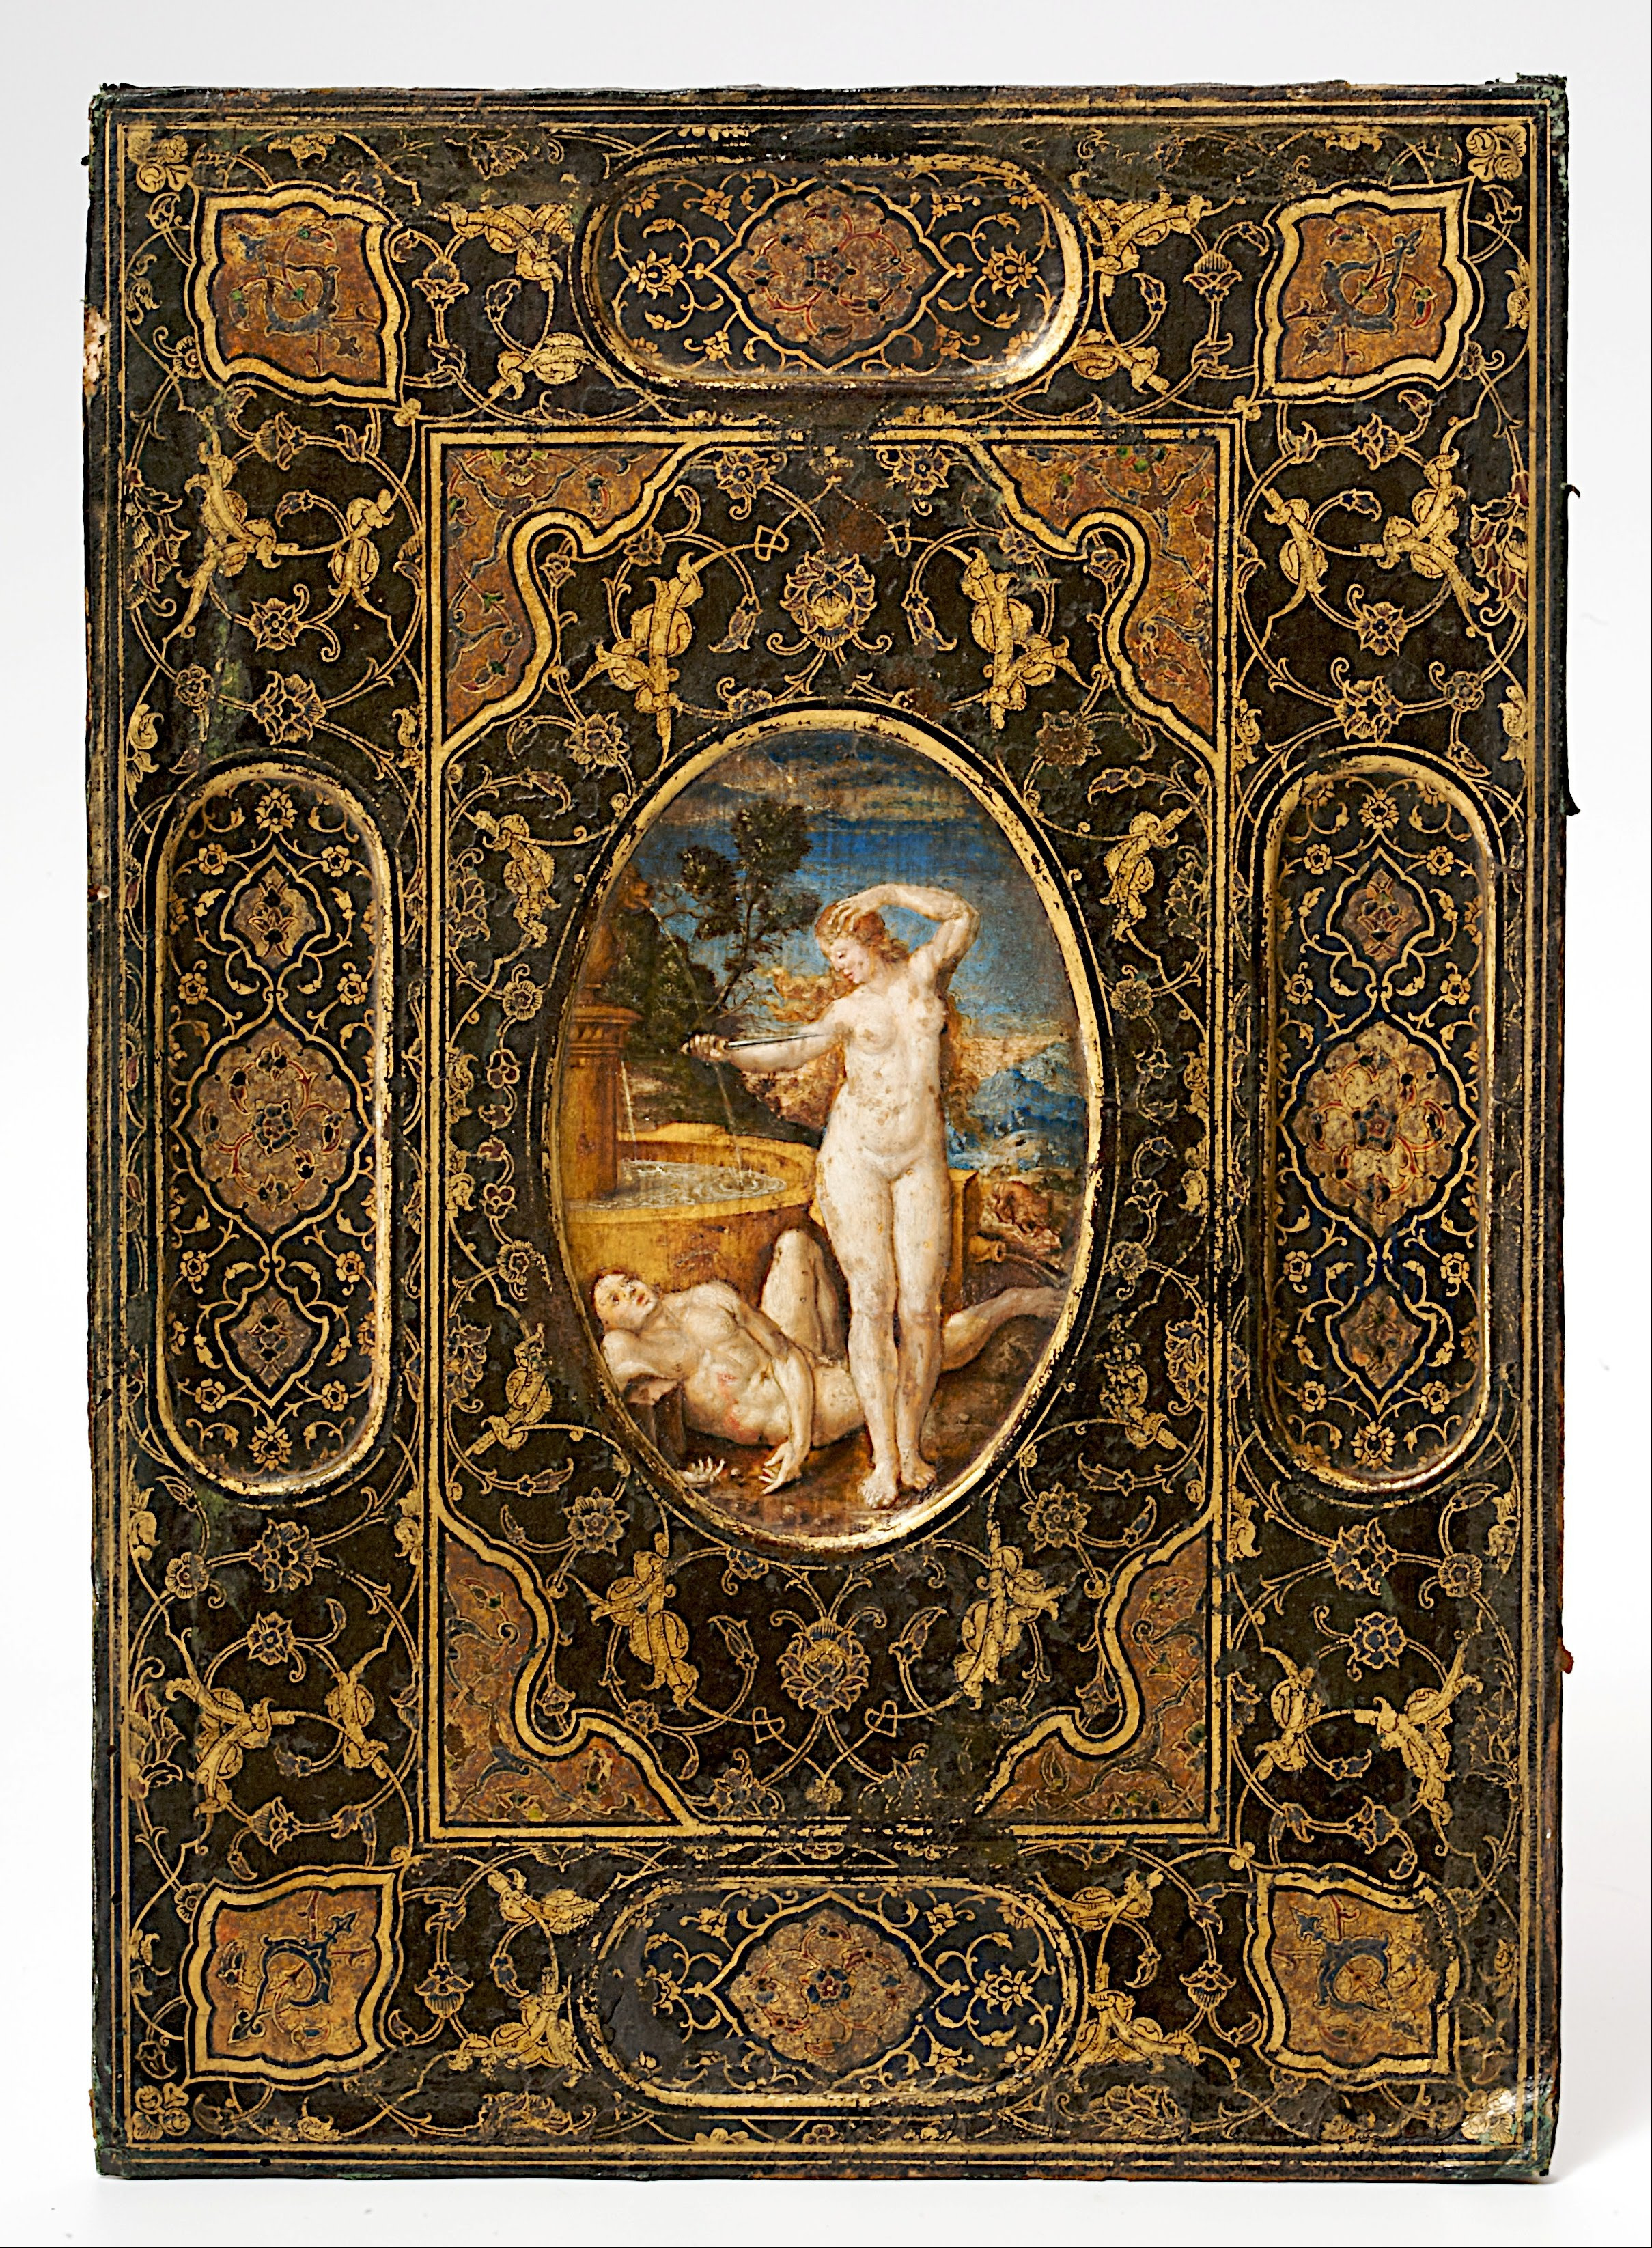 Book Cover Art History ~ File book cover google art project g wikimedia commons